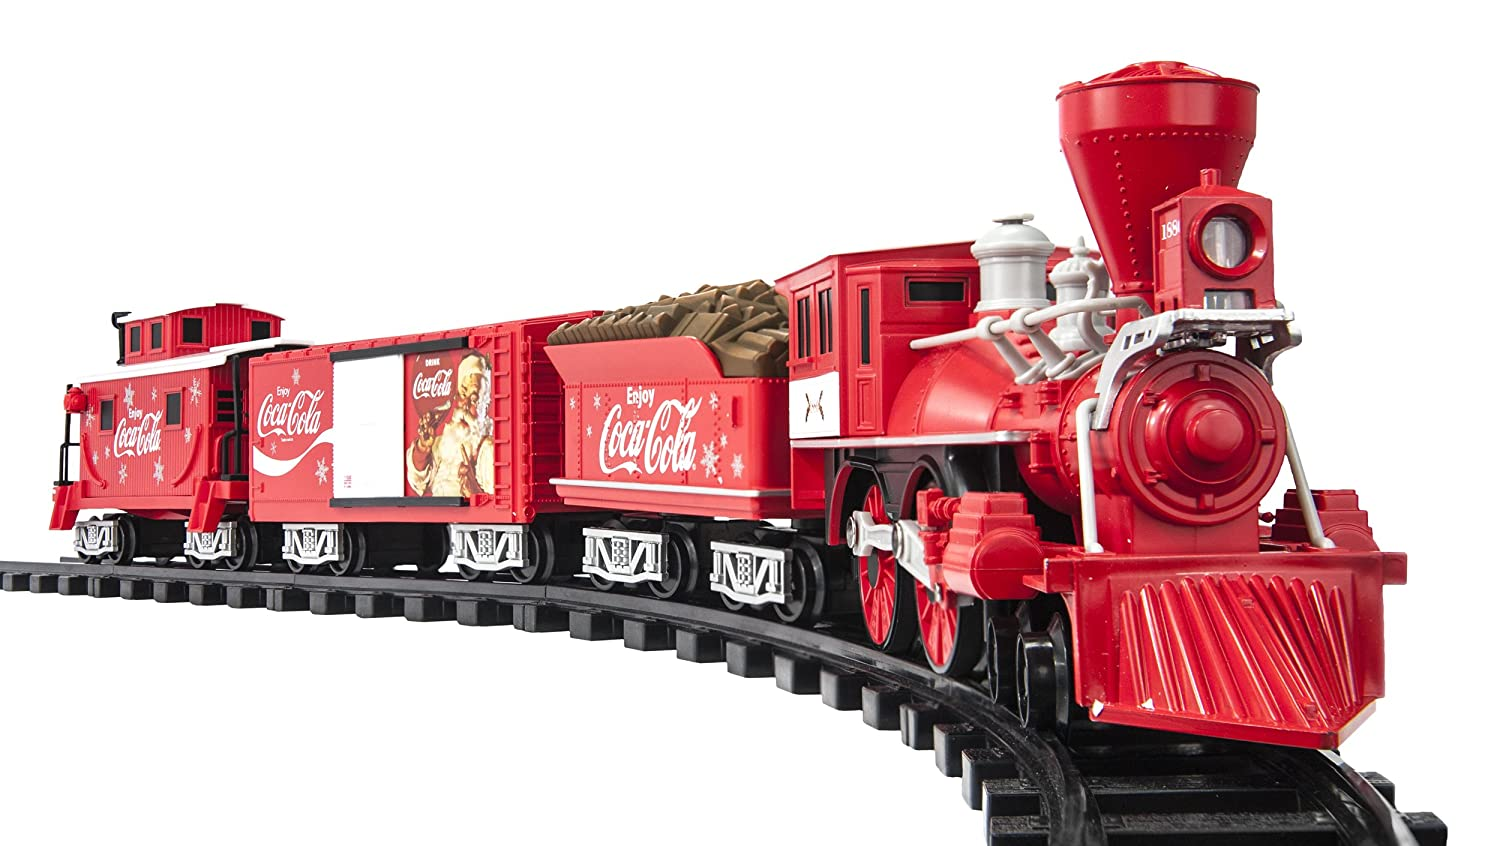 Lionel Trains Coca Cola Holiday G Gauge Train Set Toys Center Off Switch Wired To Control Remote Track Games